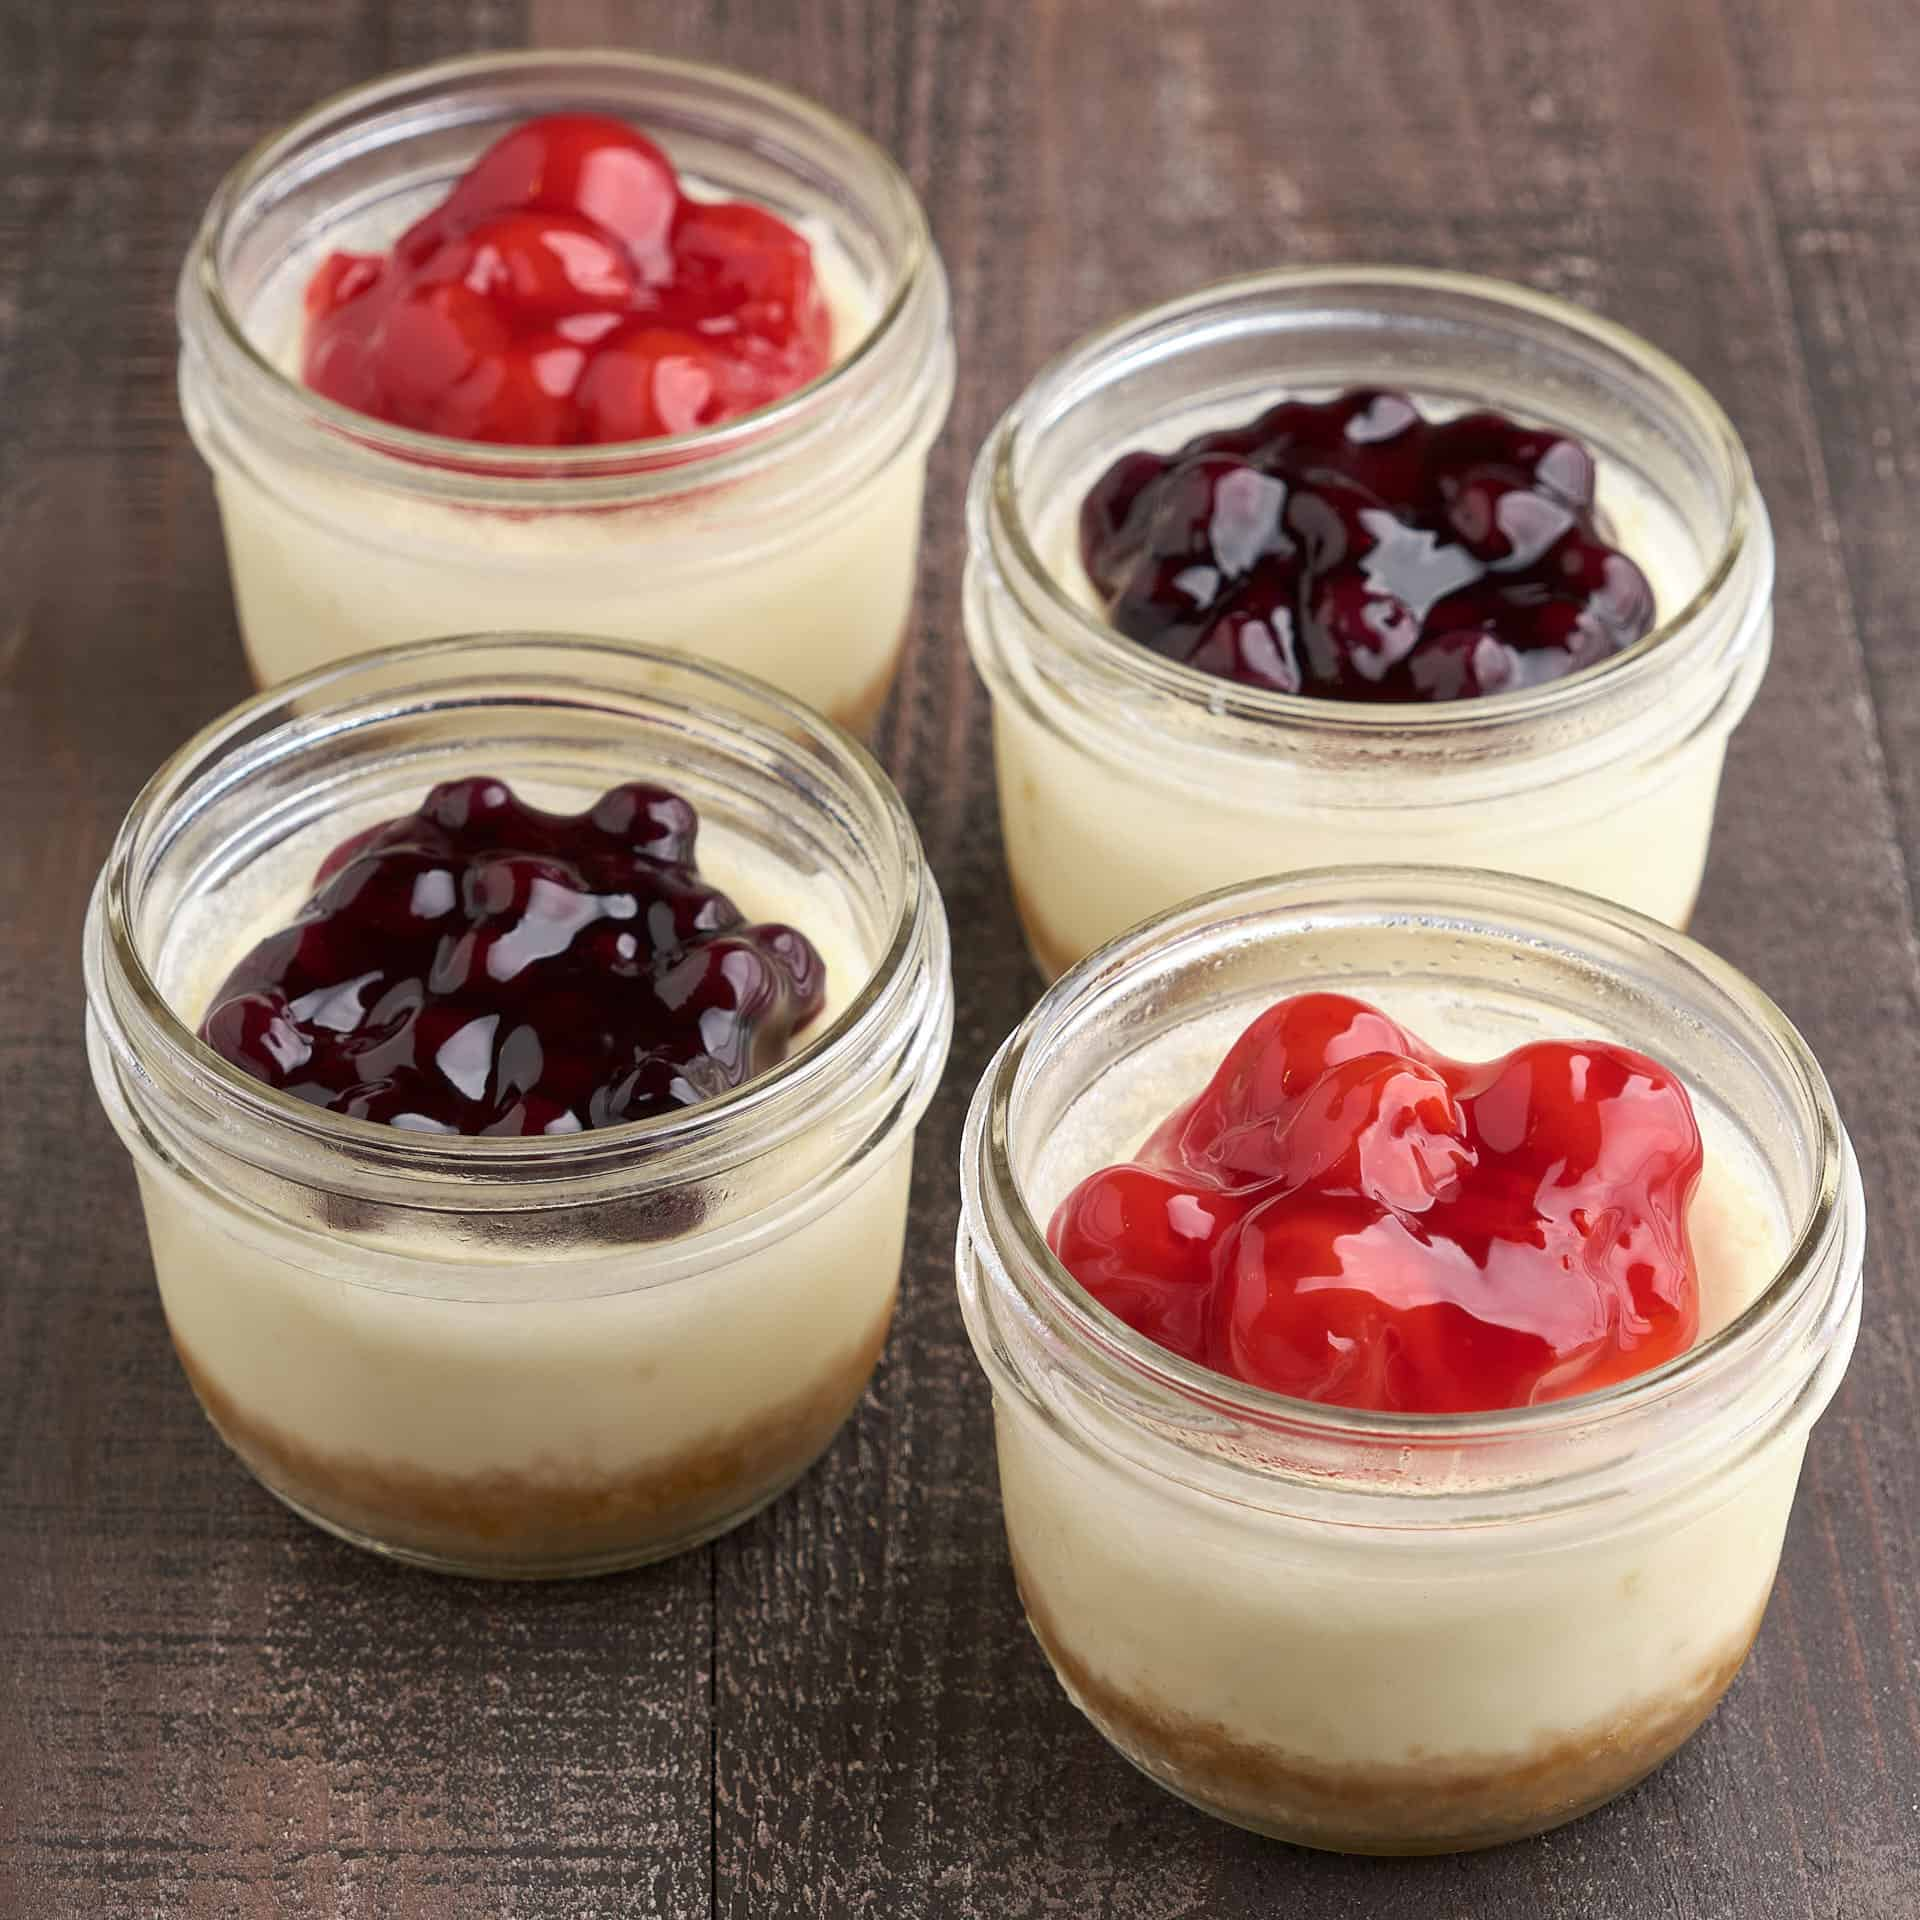 Four mini cheesecakes in canning jars, with cherry and blueberry topping, on a wood tabletop